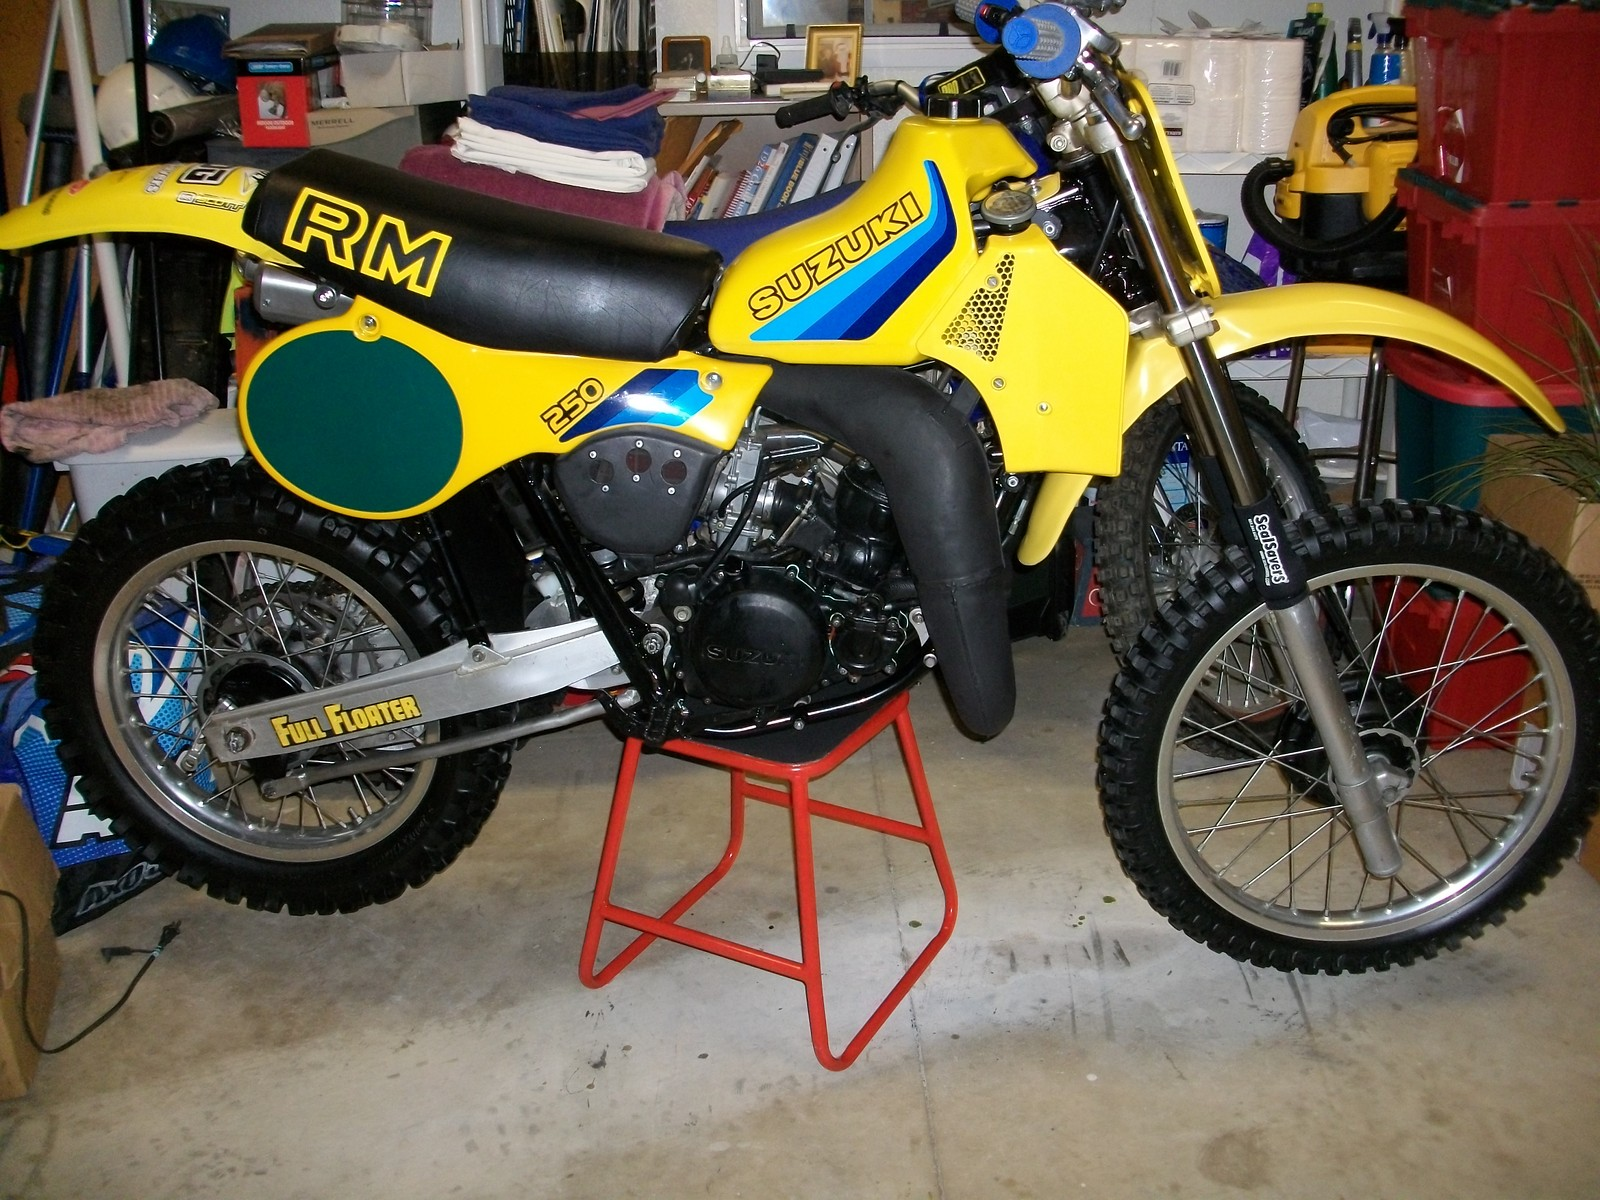 1982 RM250Z - hiwiremx - Motocross Pictures - Vital MX